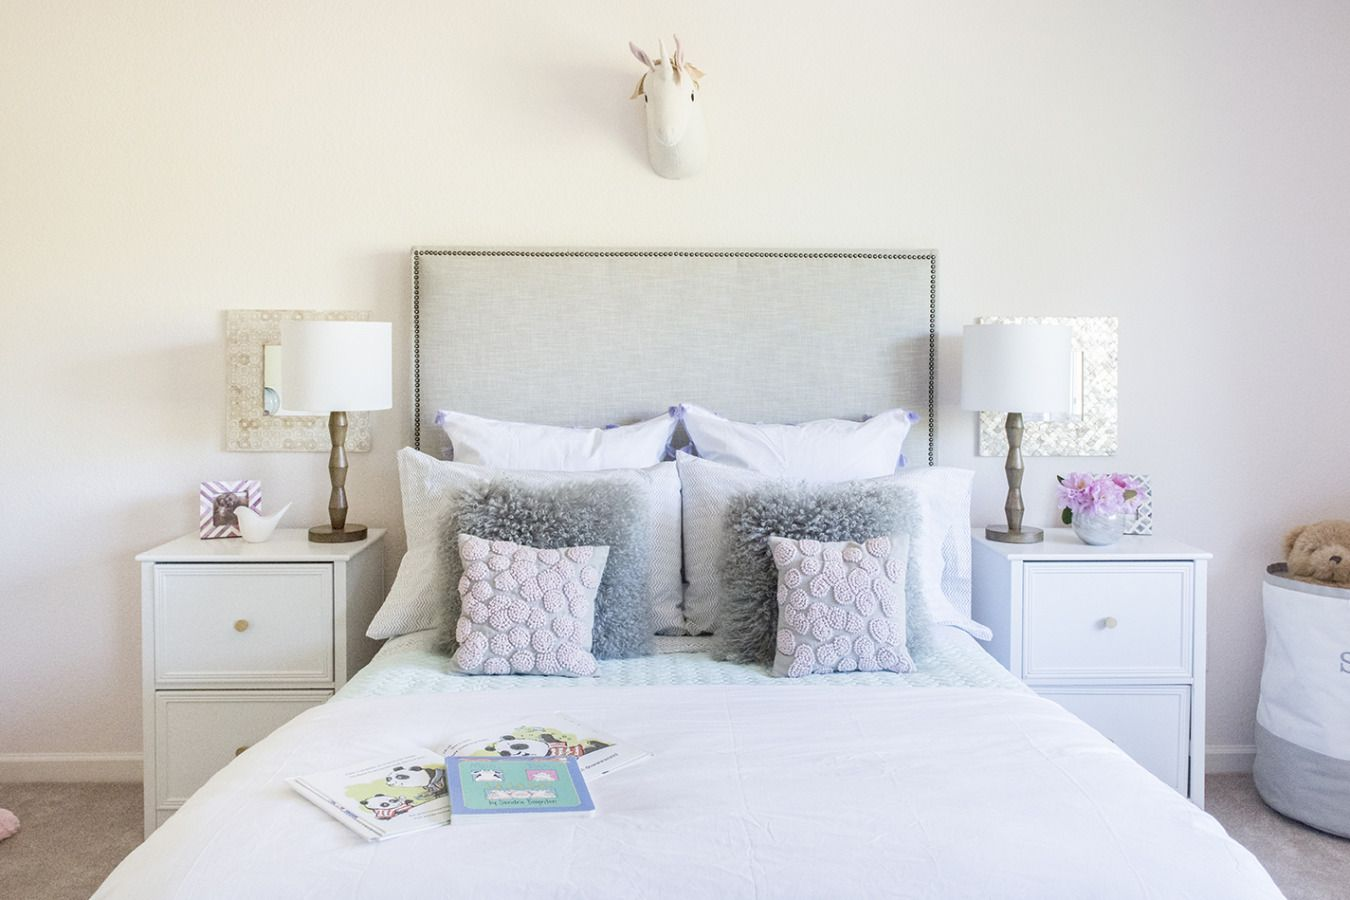 A Cute Room for Our Designer's Daughter | Room, Whimsical ...